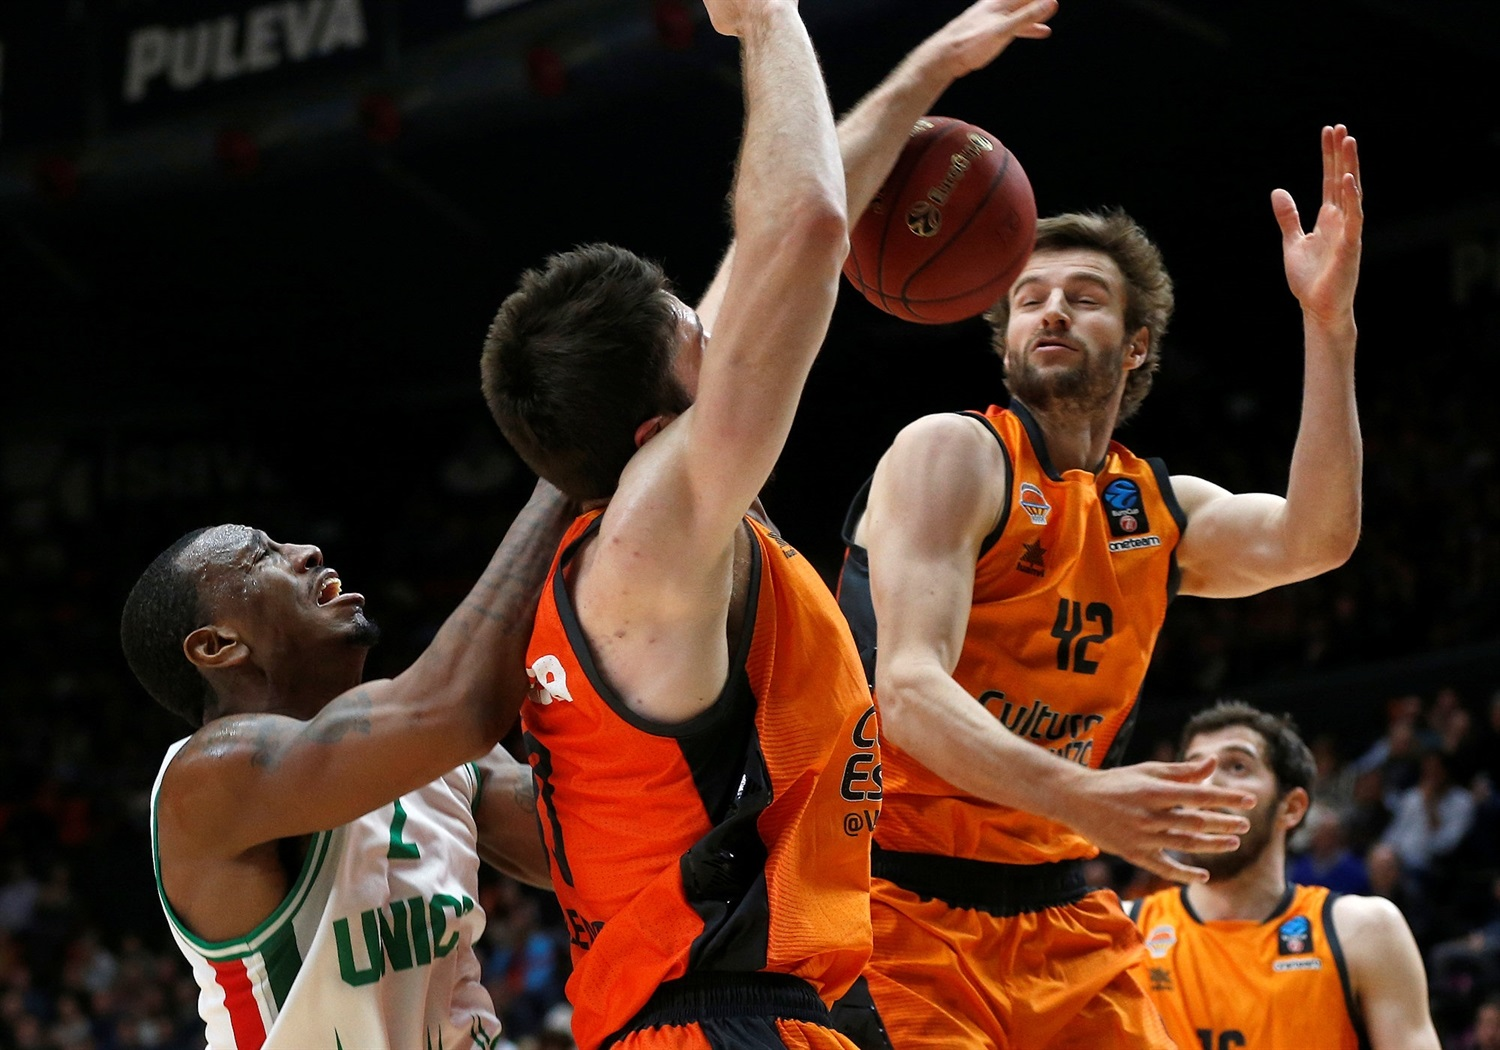 Aaron Doornekamp - Valencia Basket (photo Miguel Angel Polo - Valencia) - EC18